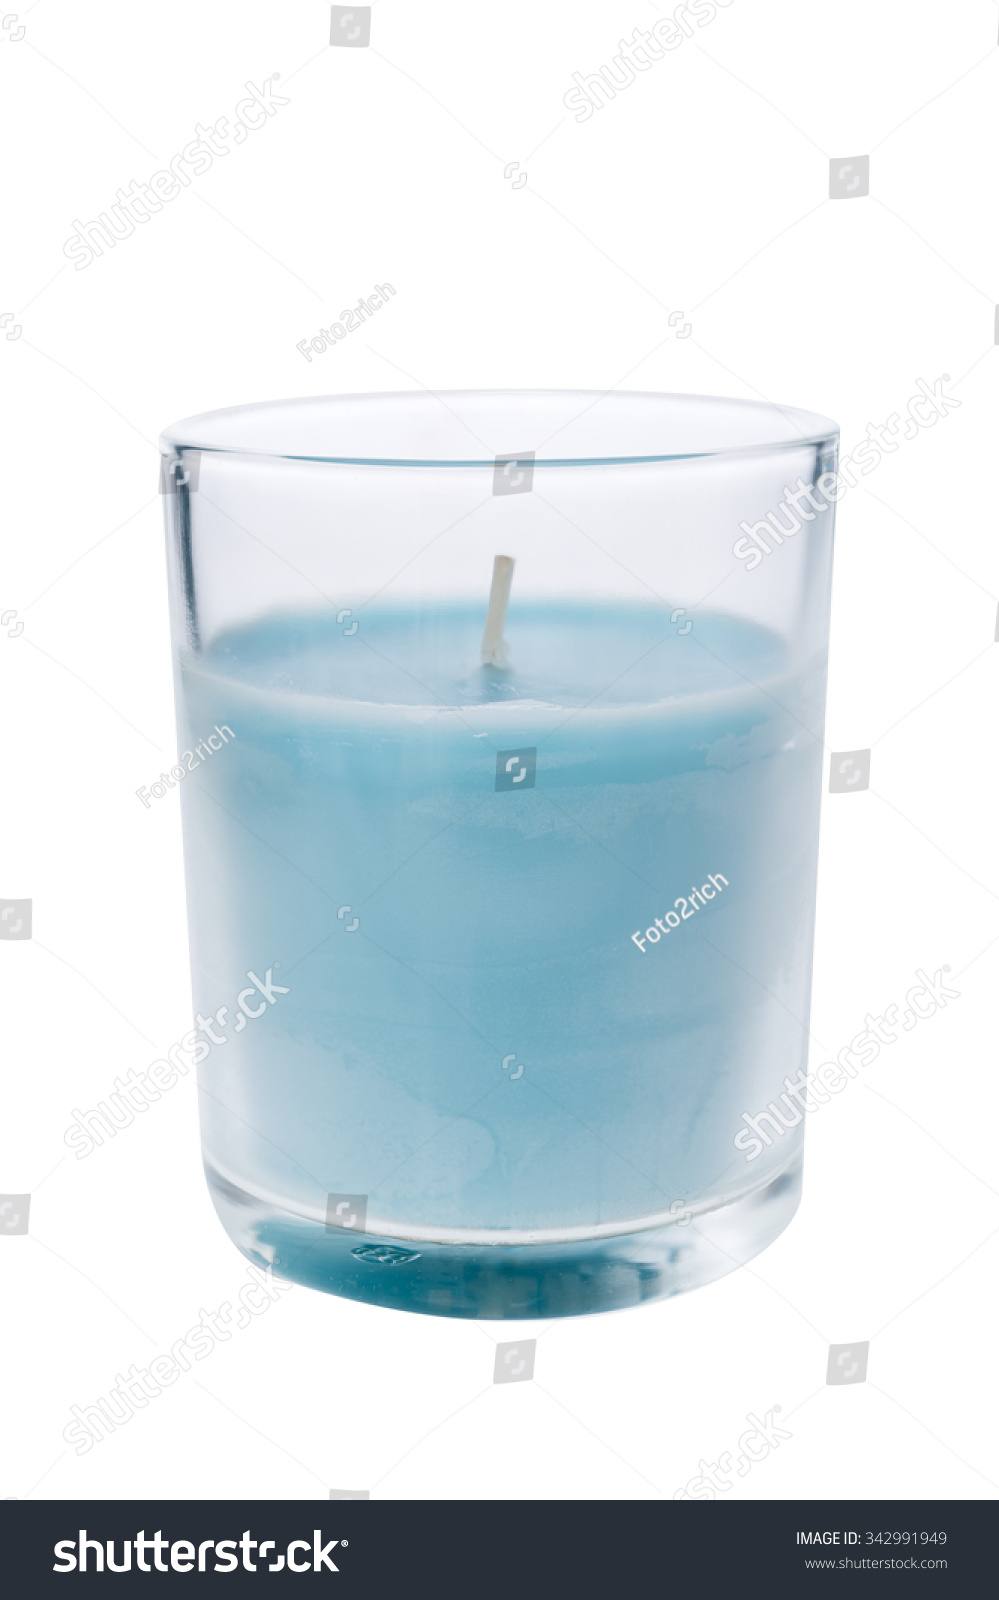 Blue Candle Glass Isolated On White Stock Photo 342991949 ... for Blue Candle White Background  585ifm